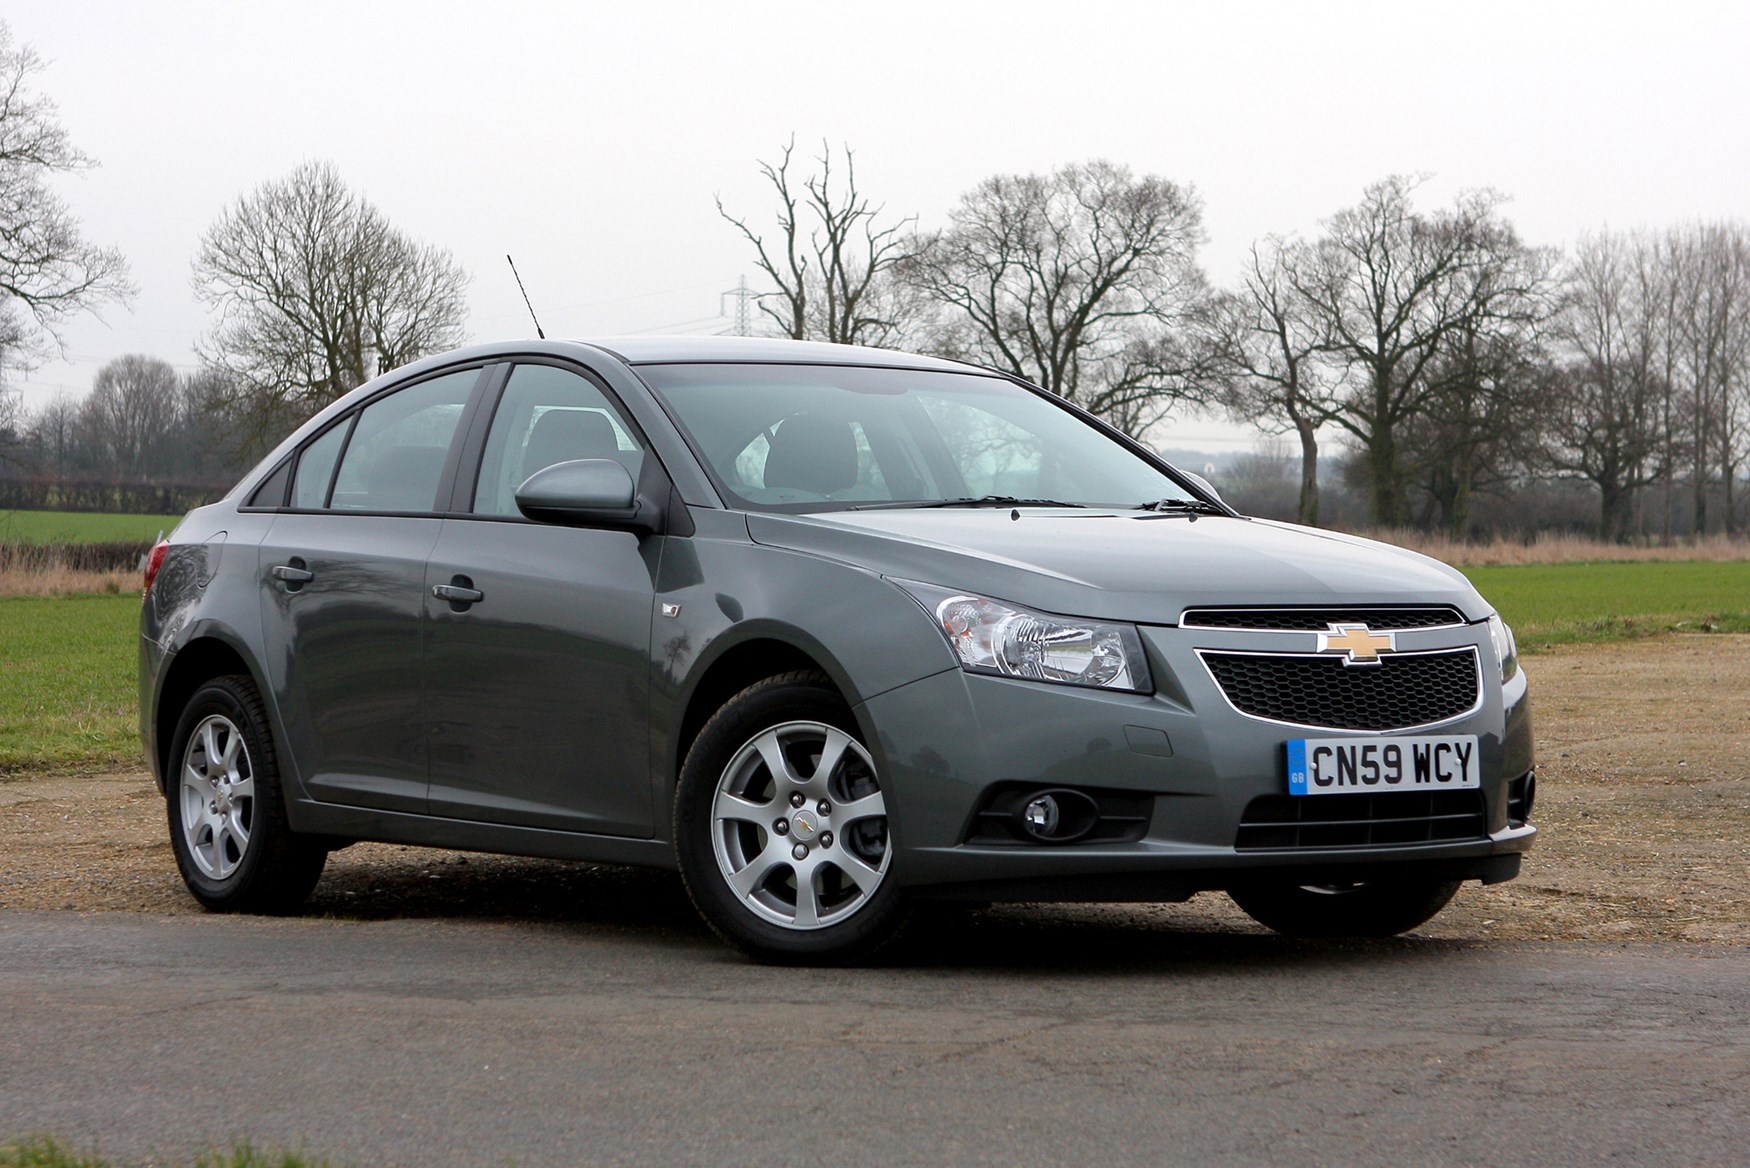 Used Chevrolet Cruze Saloon (2009 - 2011) Review | Parkers